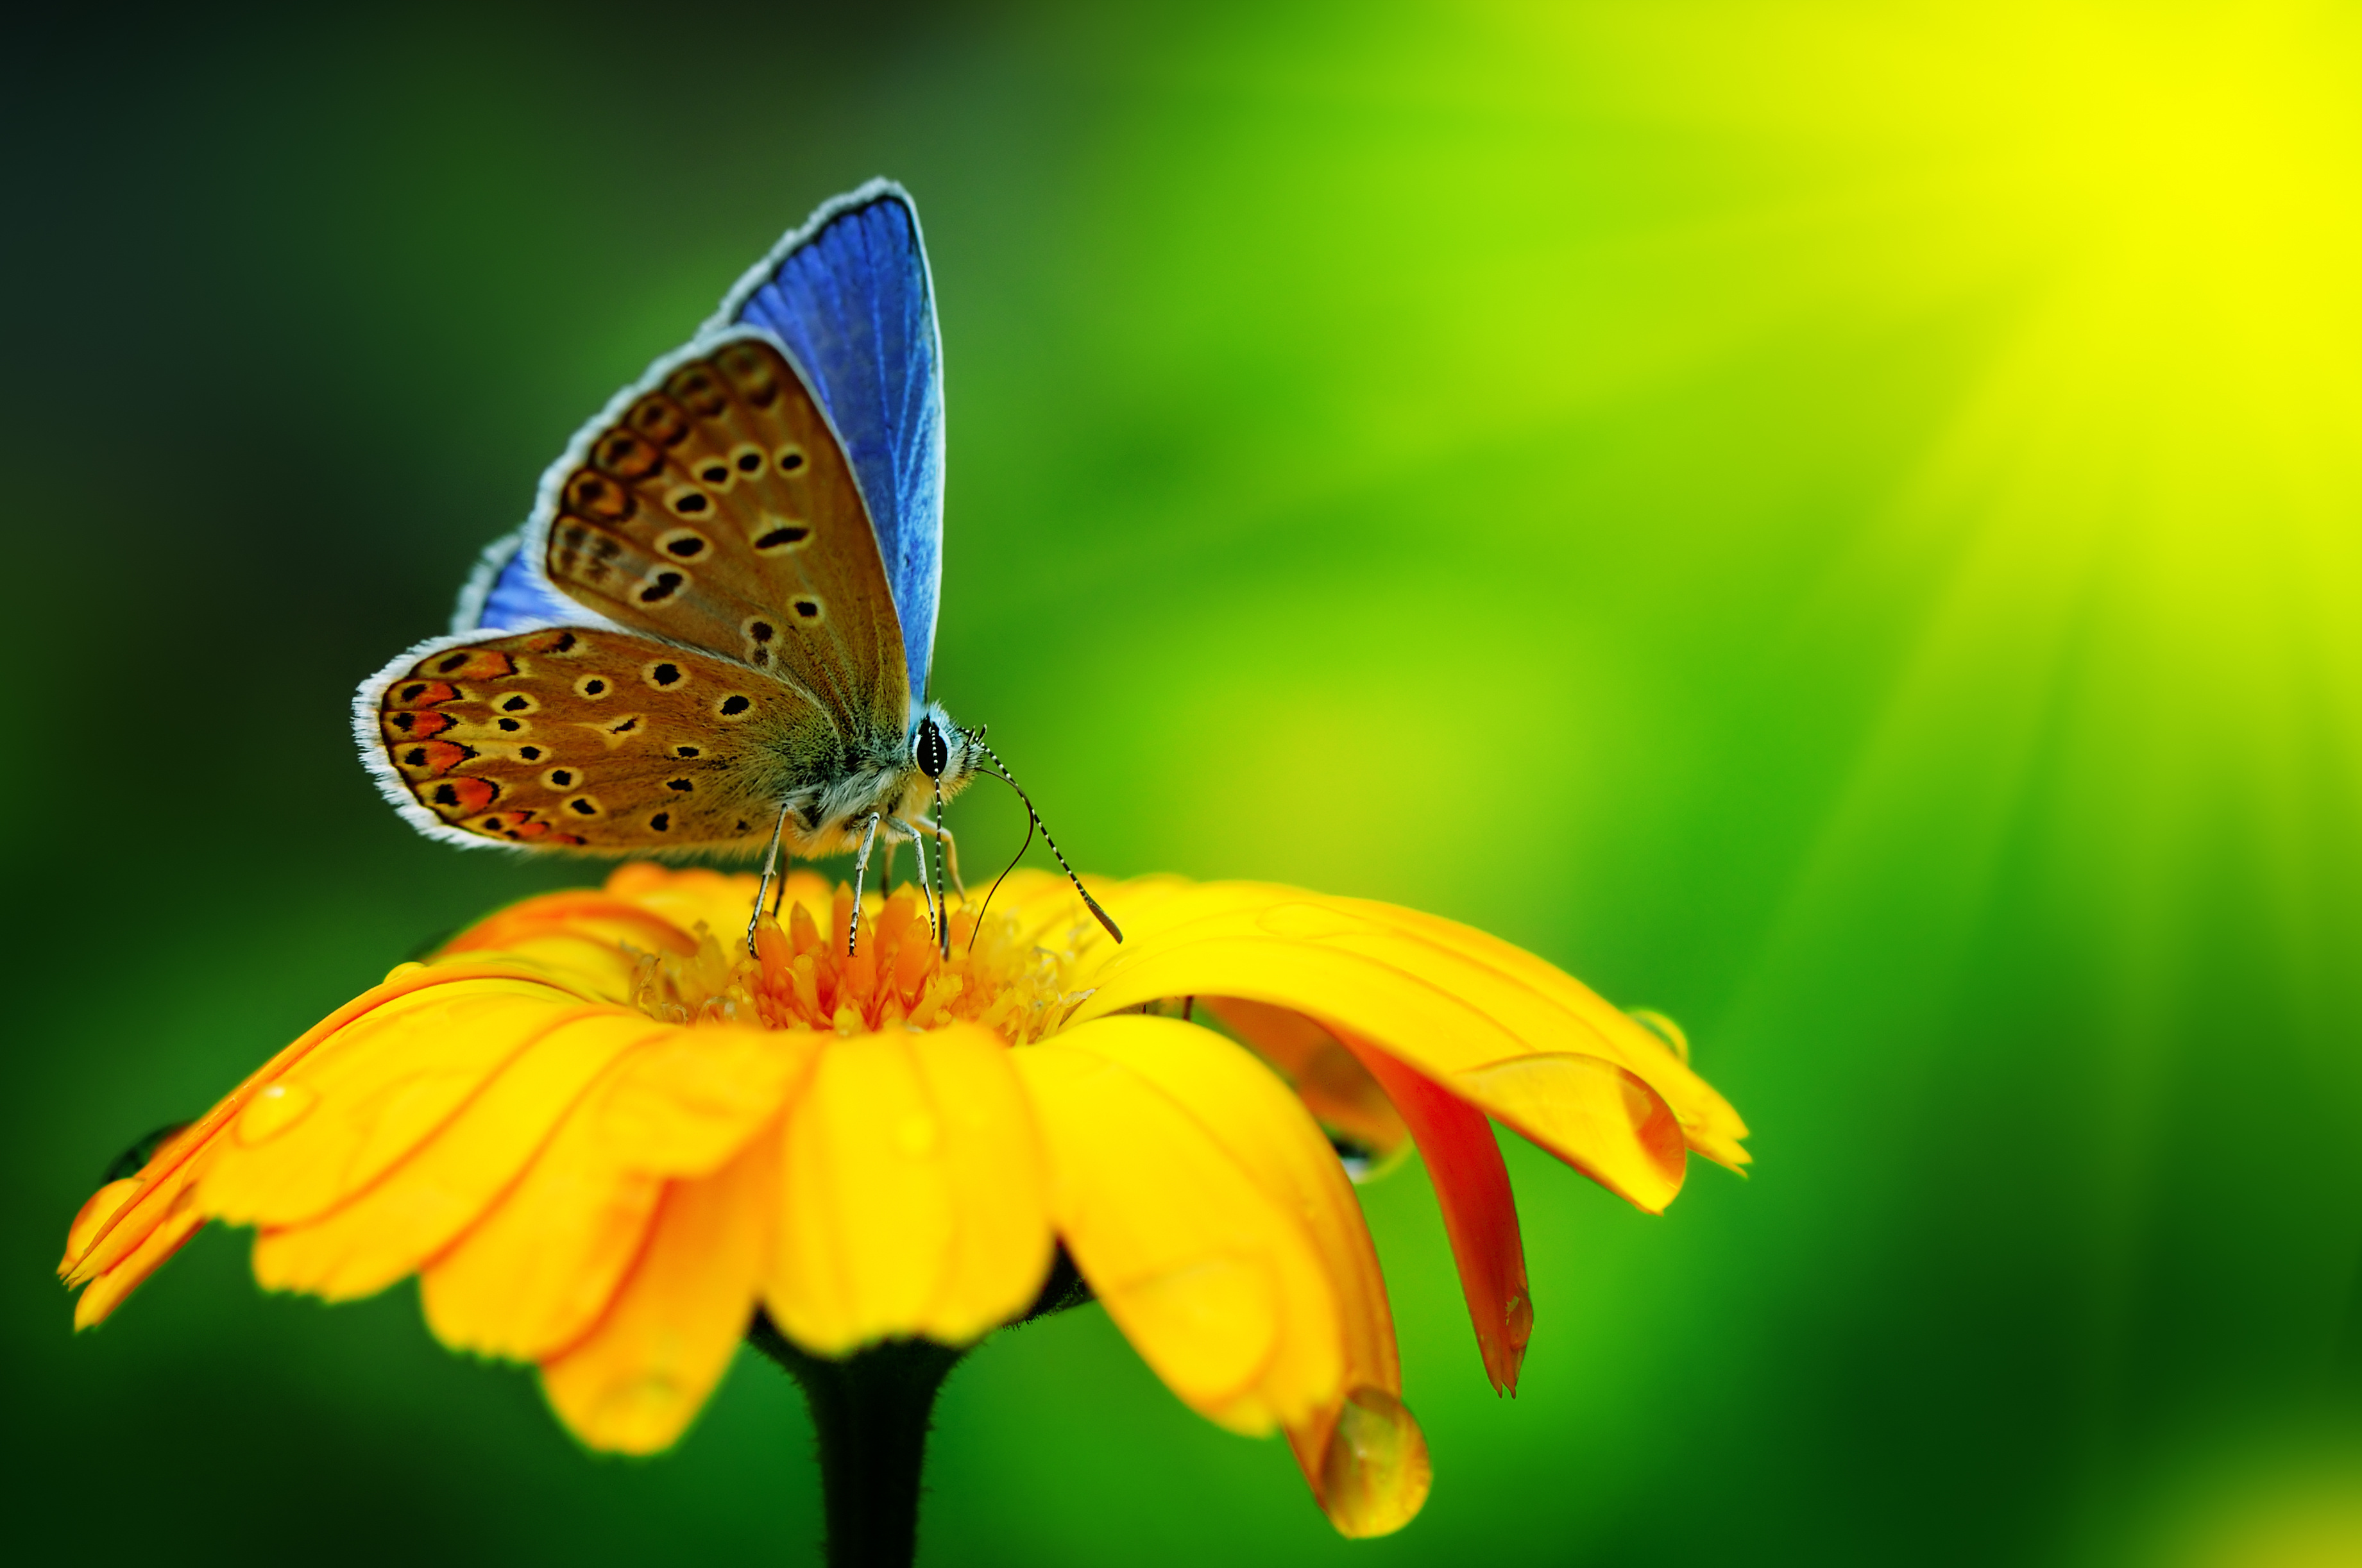 wallpaper butterfly insect flower drops yellow green bright wallpaper 3682x2445